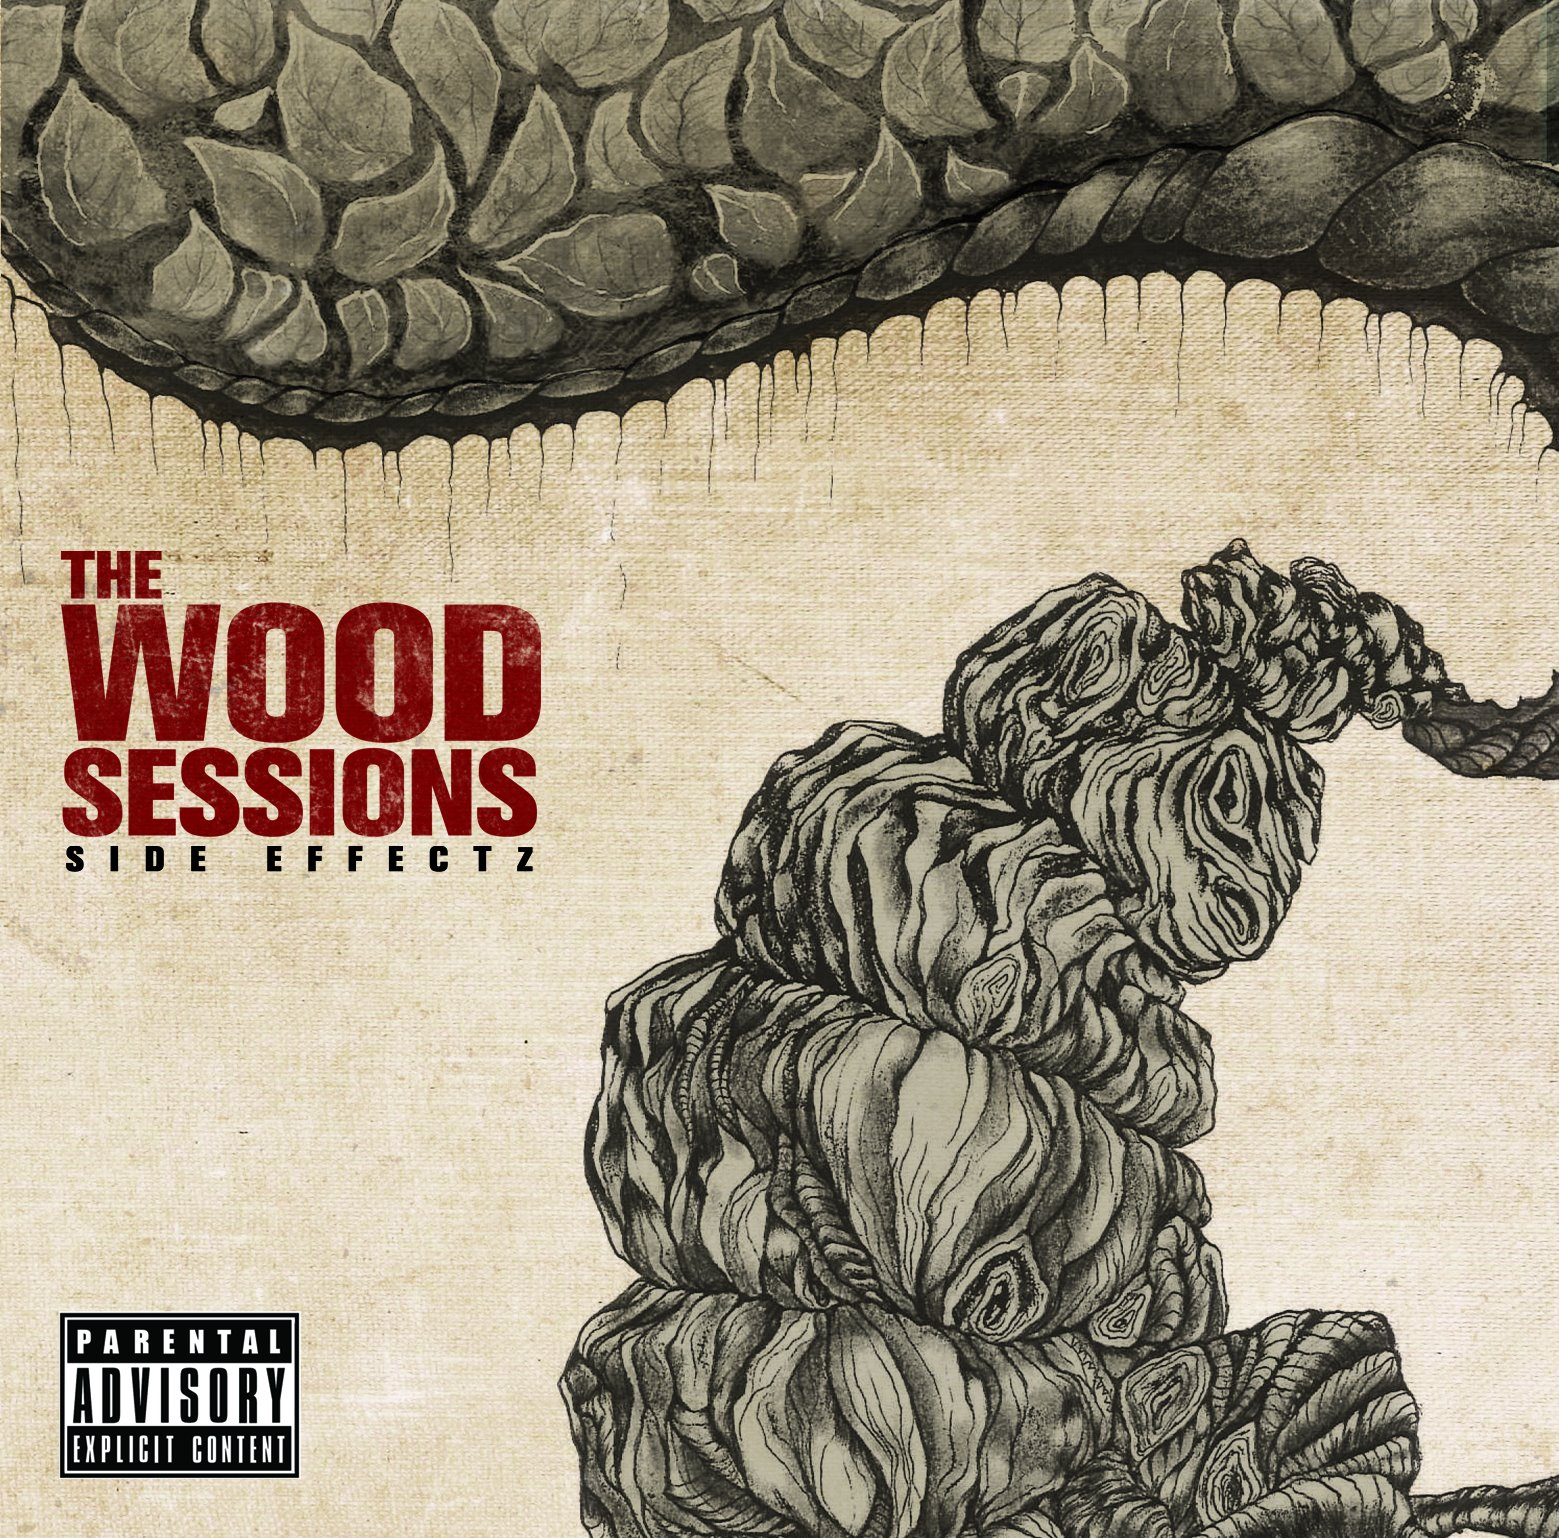 THE WOOD SESSIONS